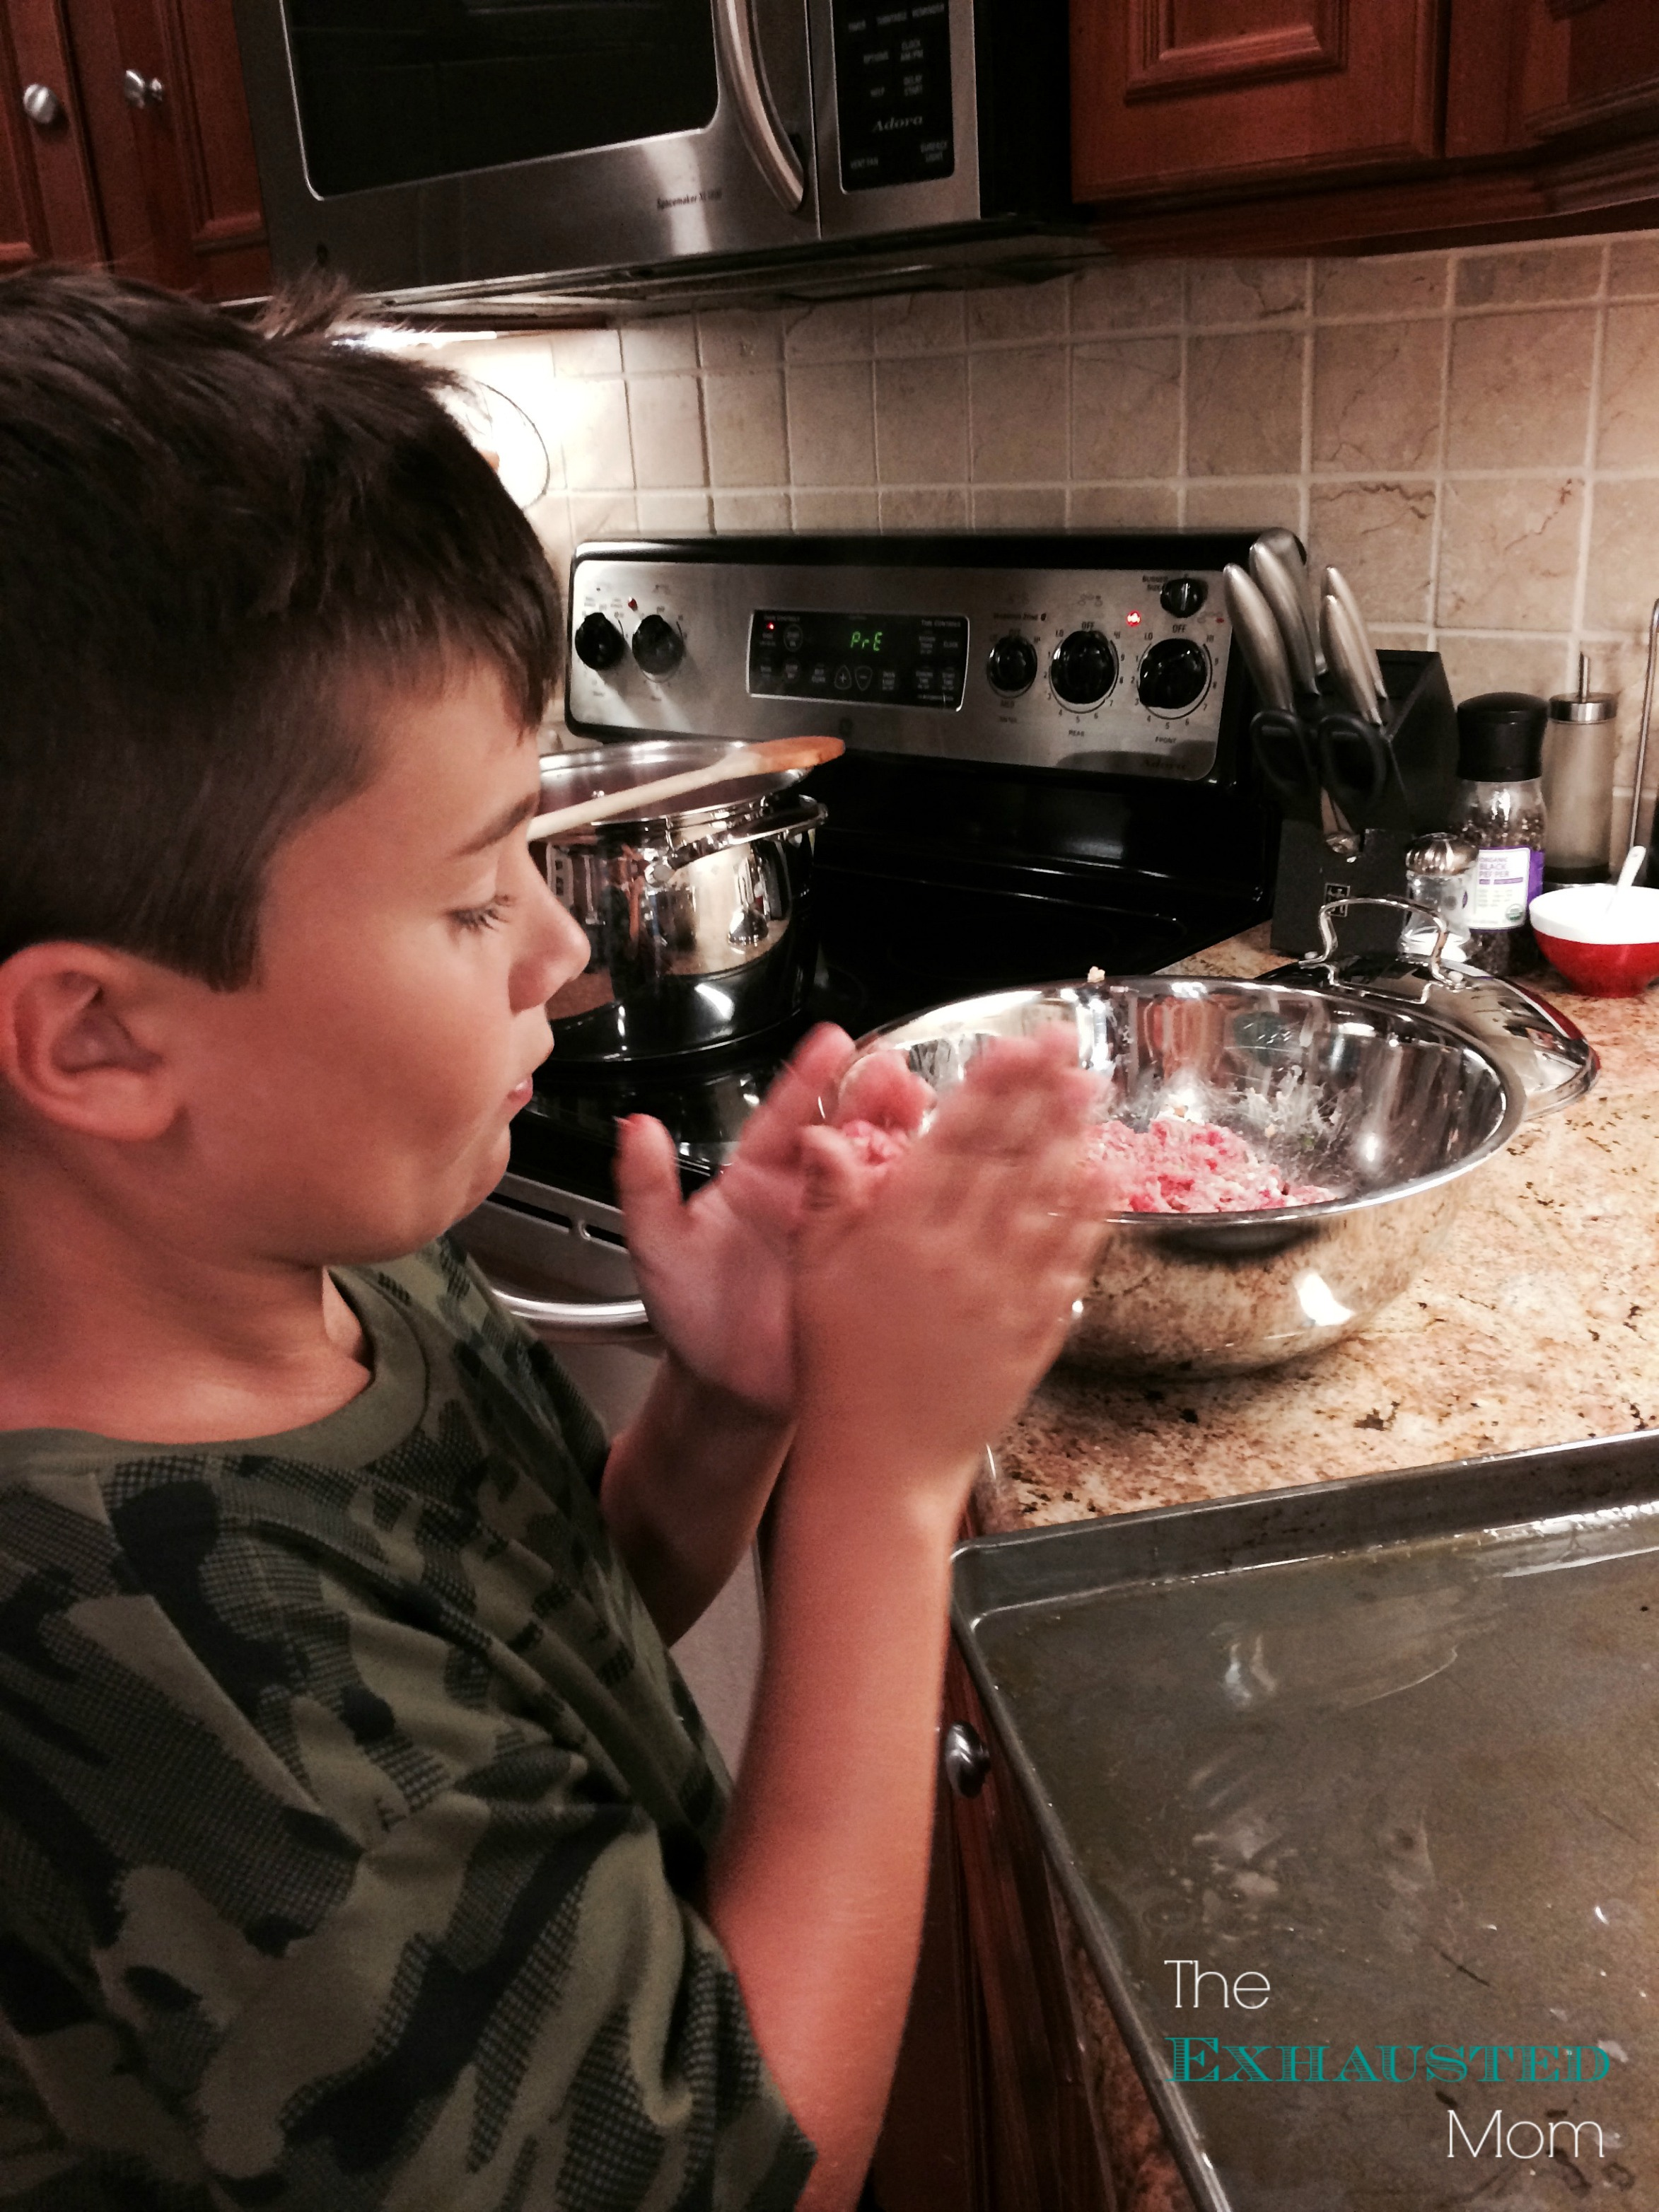 Using their hands as tools for cooking meatballs or making cookies is also a great age-appropriate skill.